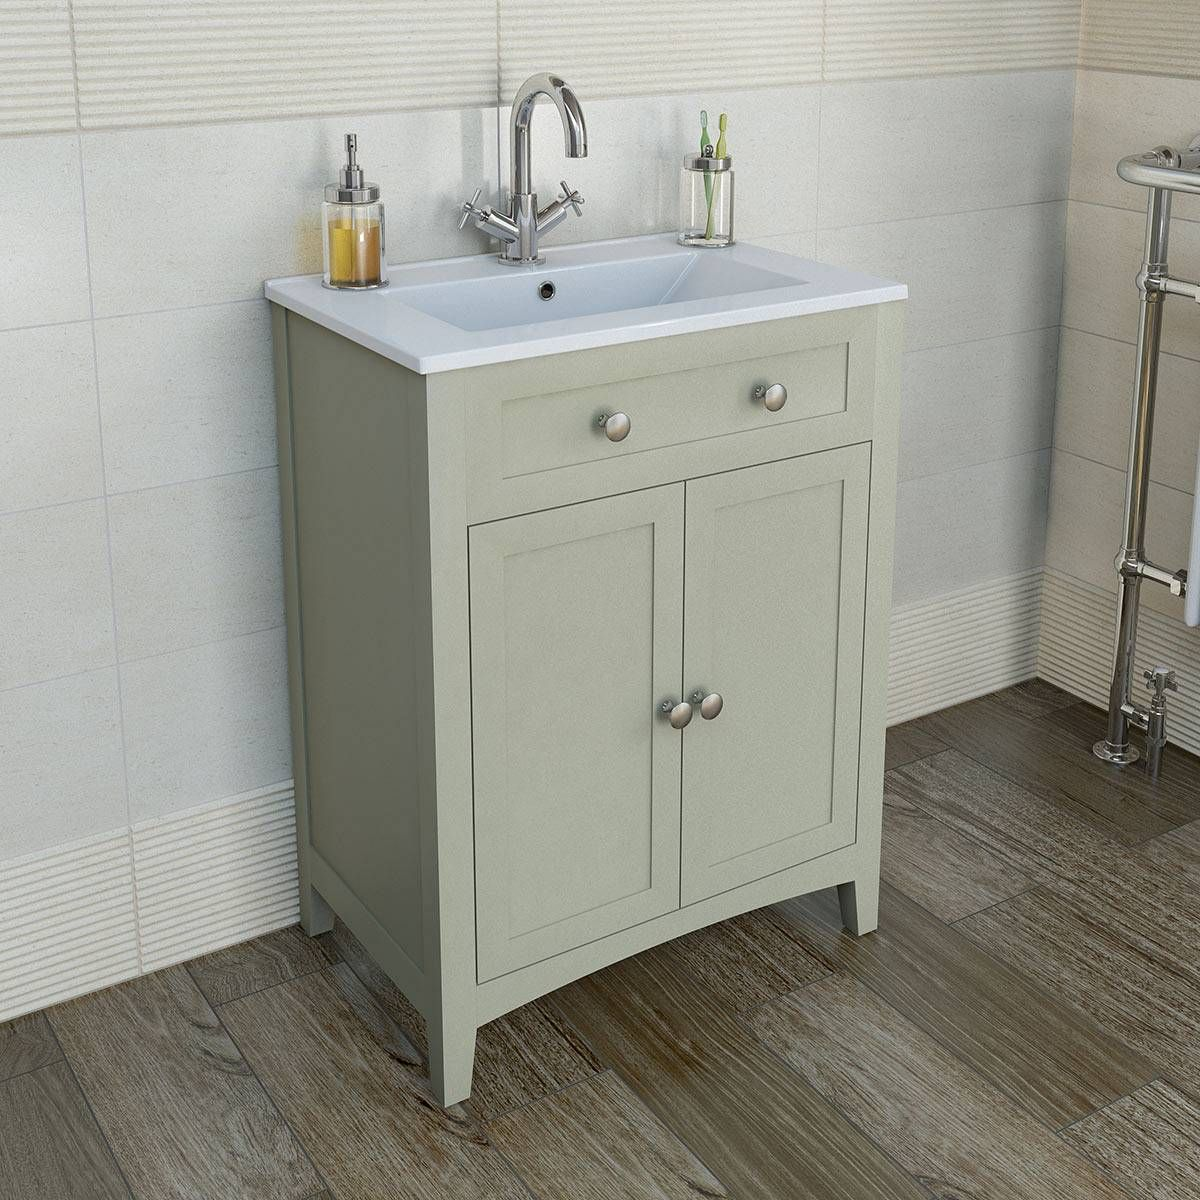 Bathroom Accessories Victoria Plumb camberley sage 600 door unit & basin now only £299.99 from